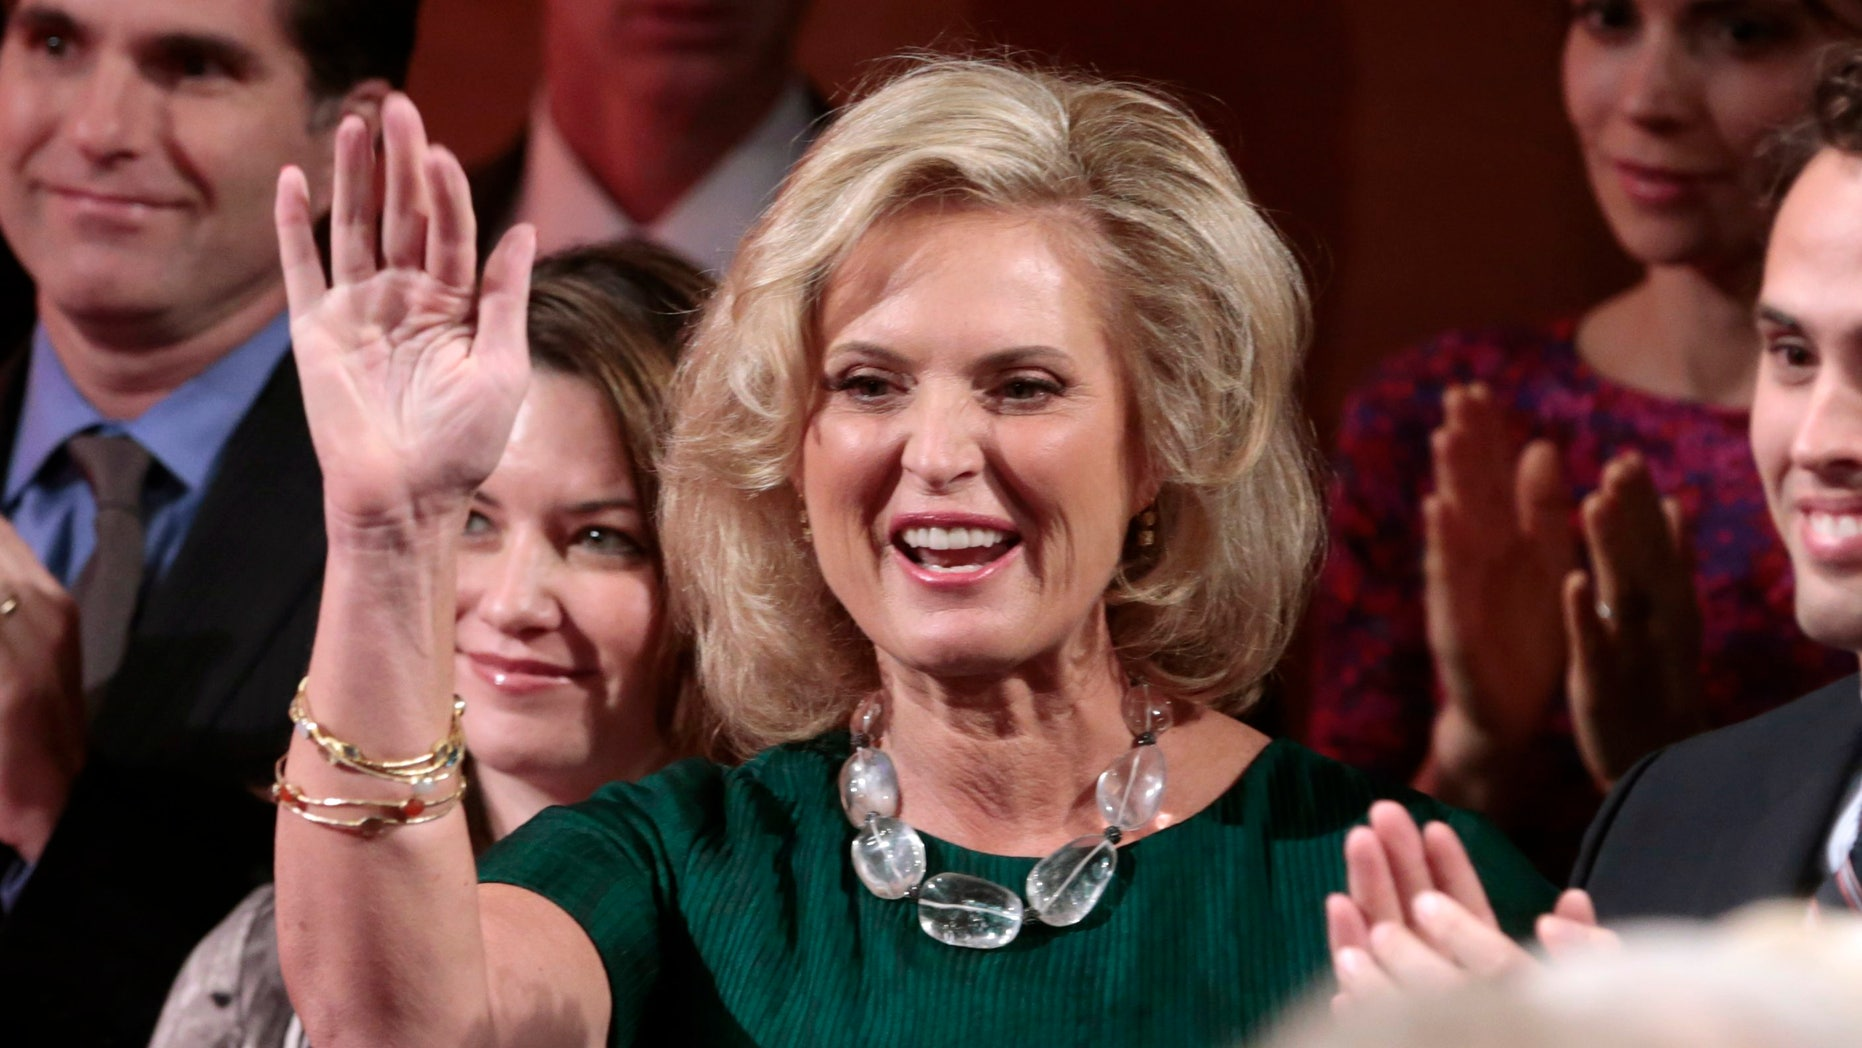 Republican presidential nominee Mitt Romney's wife Ann waves to the crowd before the start of the final U.S. presidential debate in Boca Raton, Florida, October 22, 2012. REUTERS/Scott Audette (UNITED STATES  - Tags: ELECTIONS POLITICS USA PRESIDENTIAL ELECTION)   - RTR39G6I